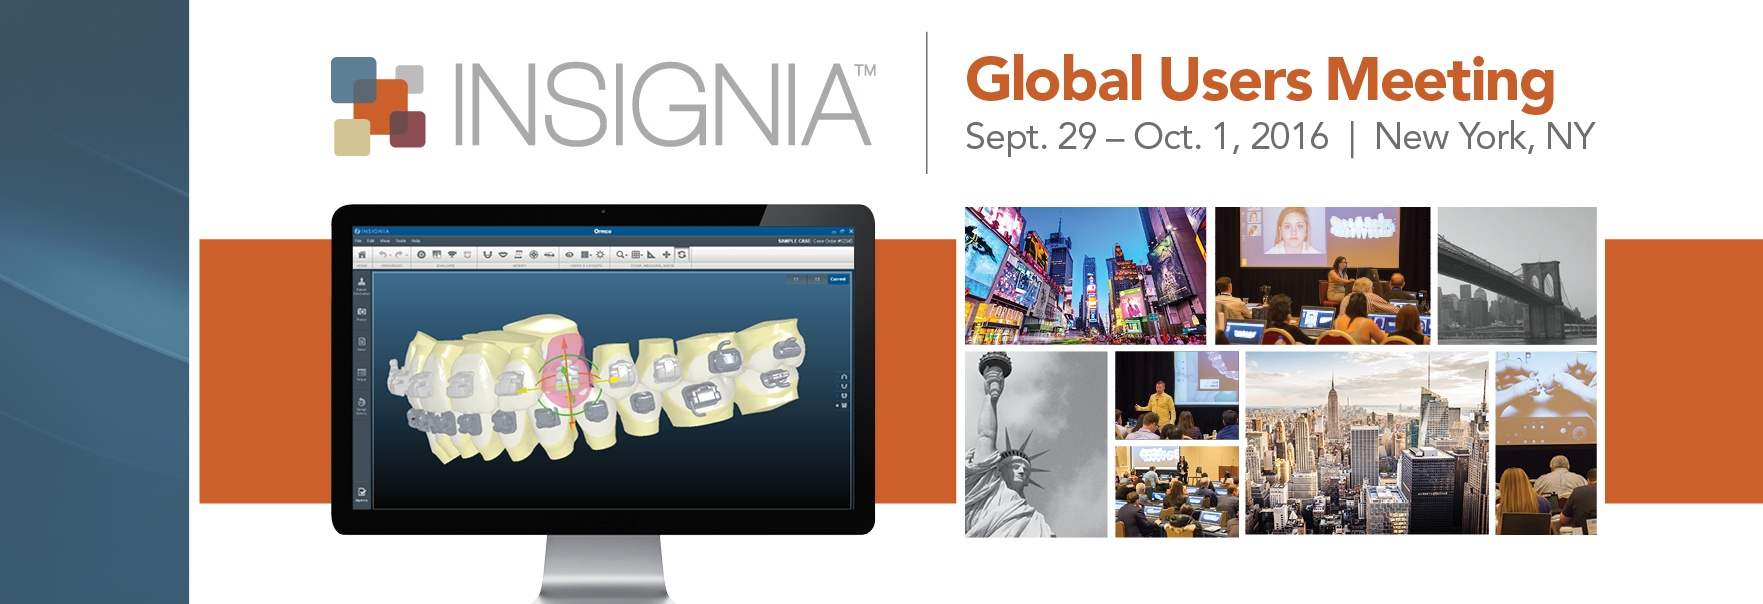 Insignia Global Users Meeting